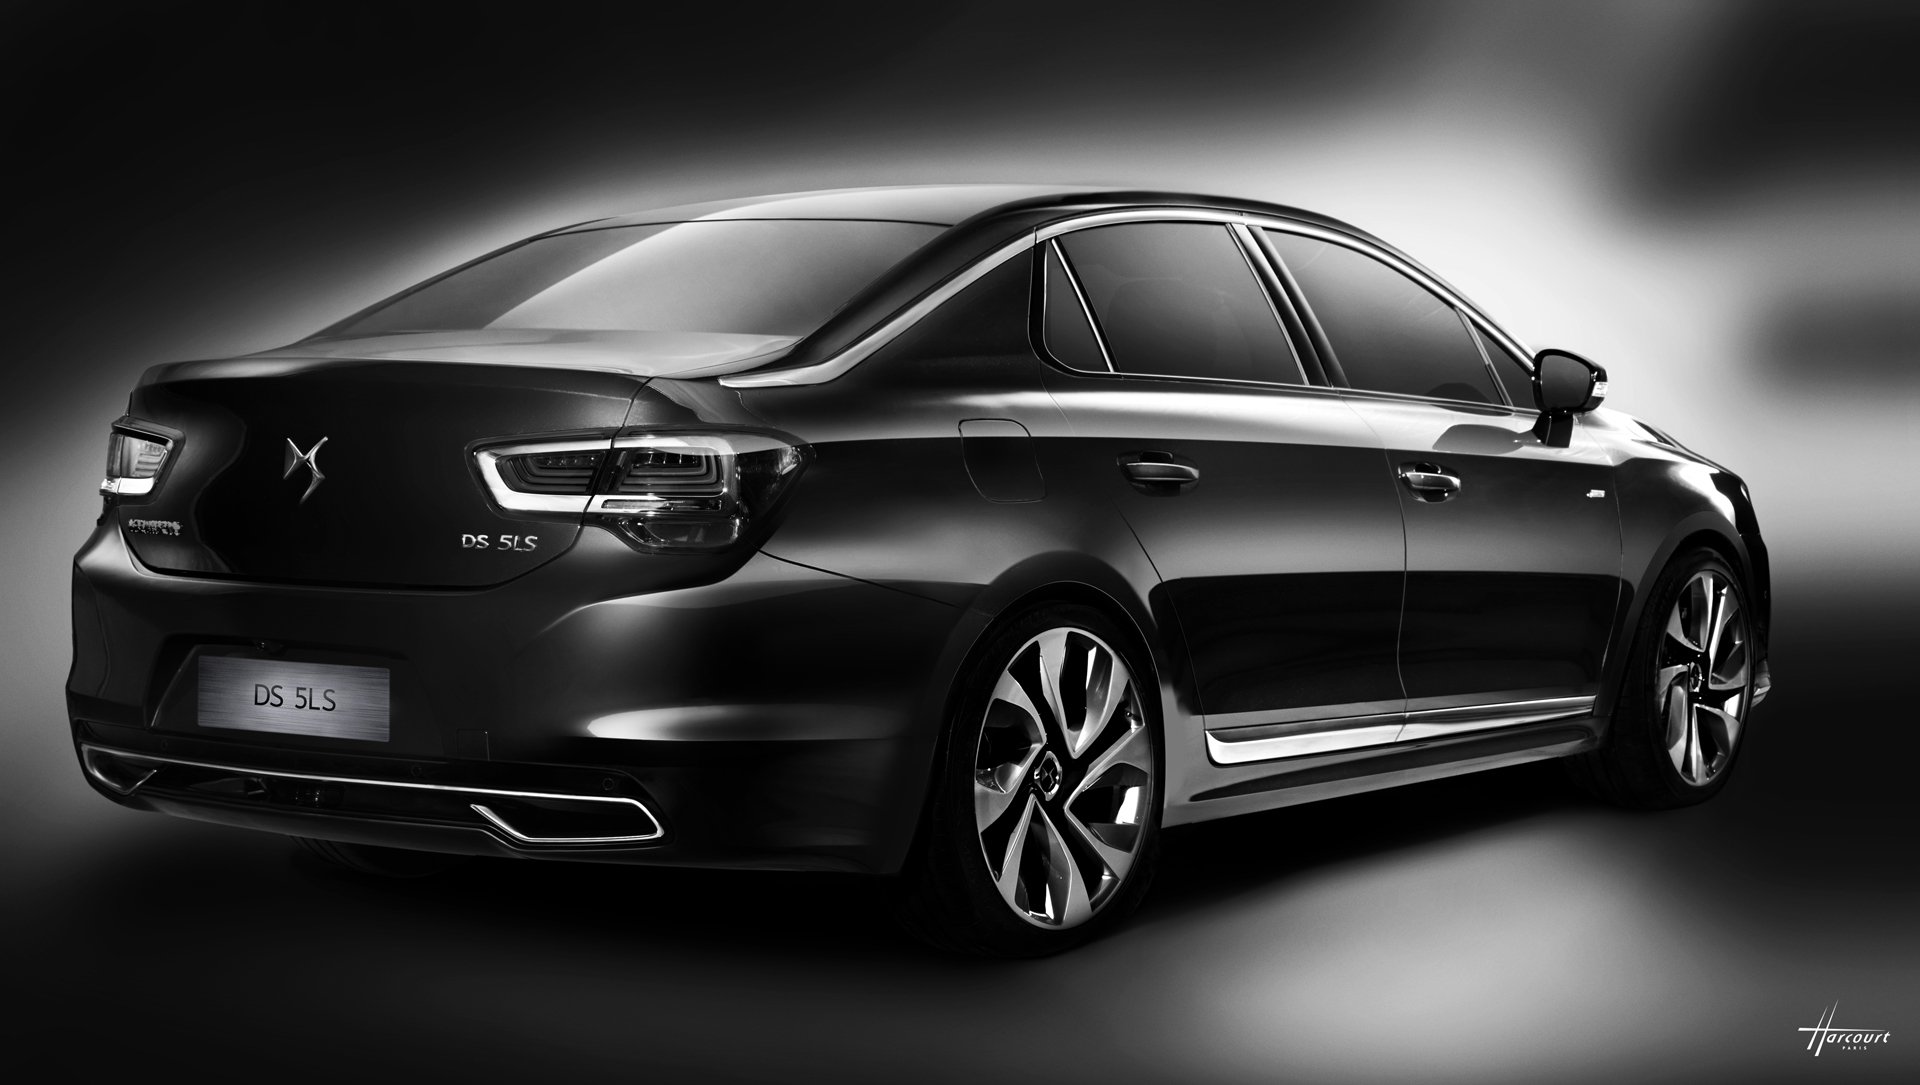 1213_citroen_ds5ls_3